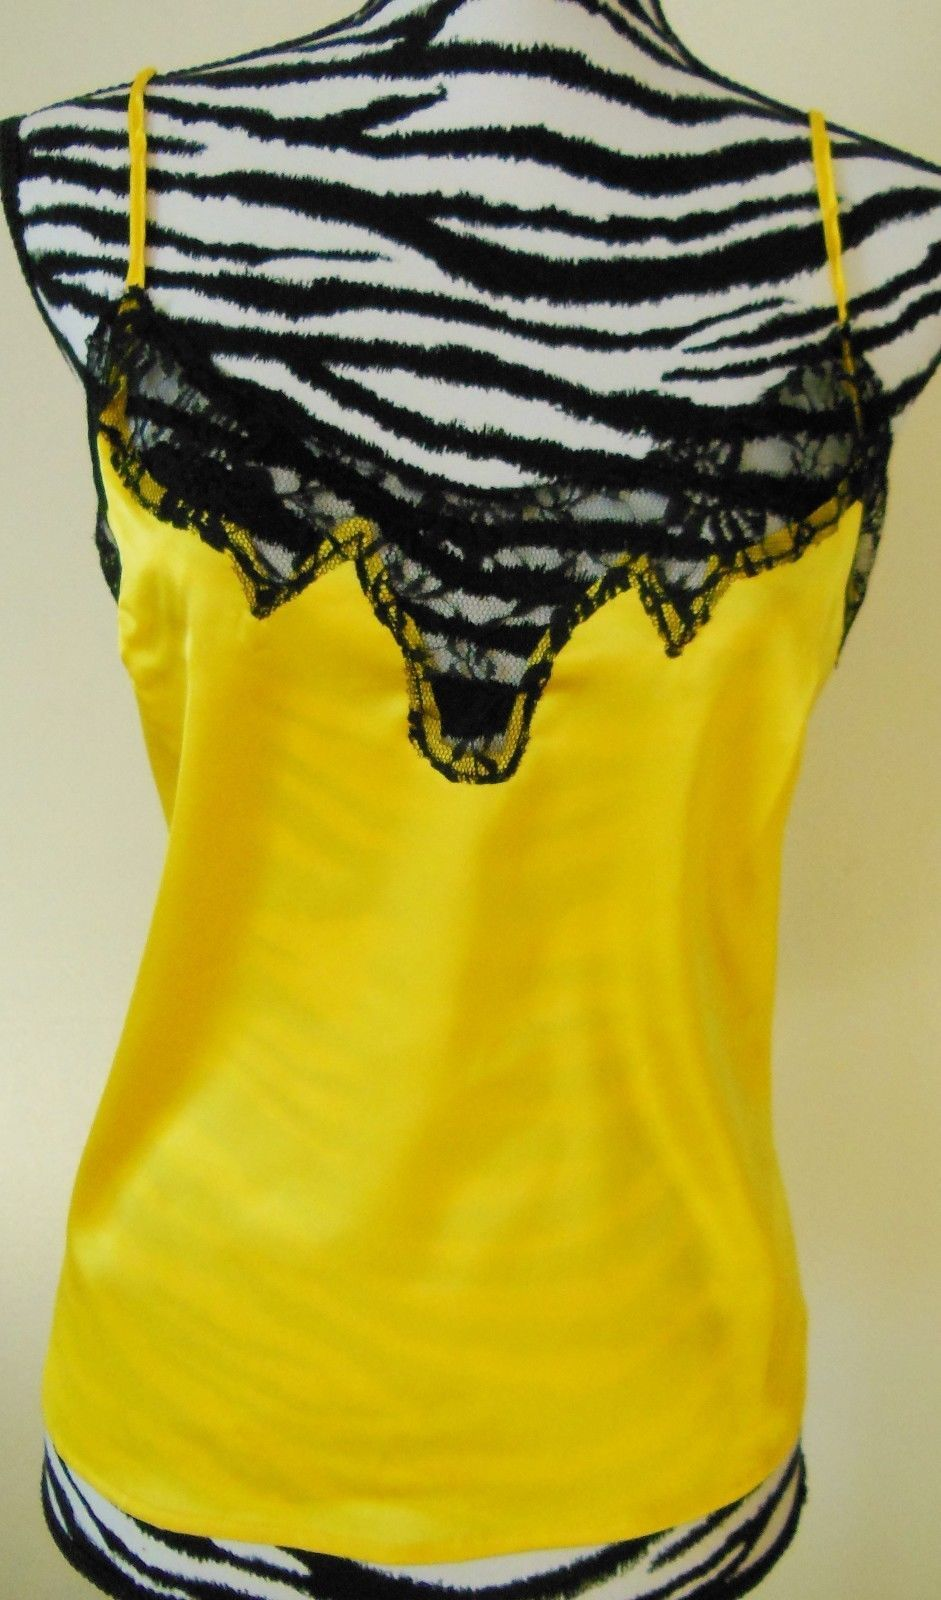 NEW Yellow satin with lace trim tank by Newport News. Size.2. - $15.00